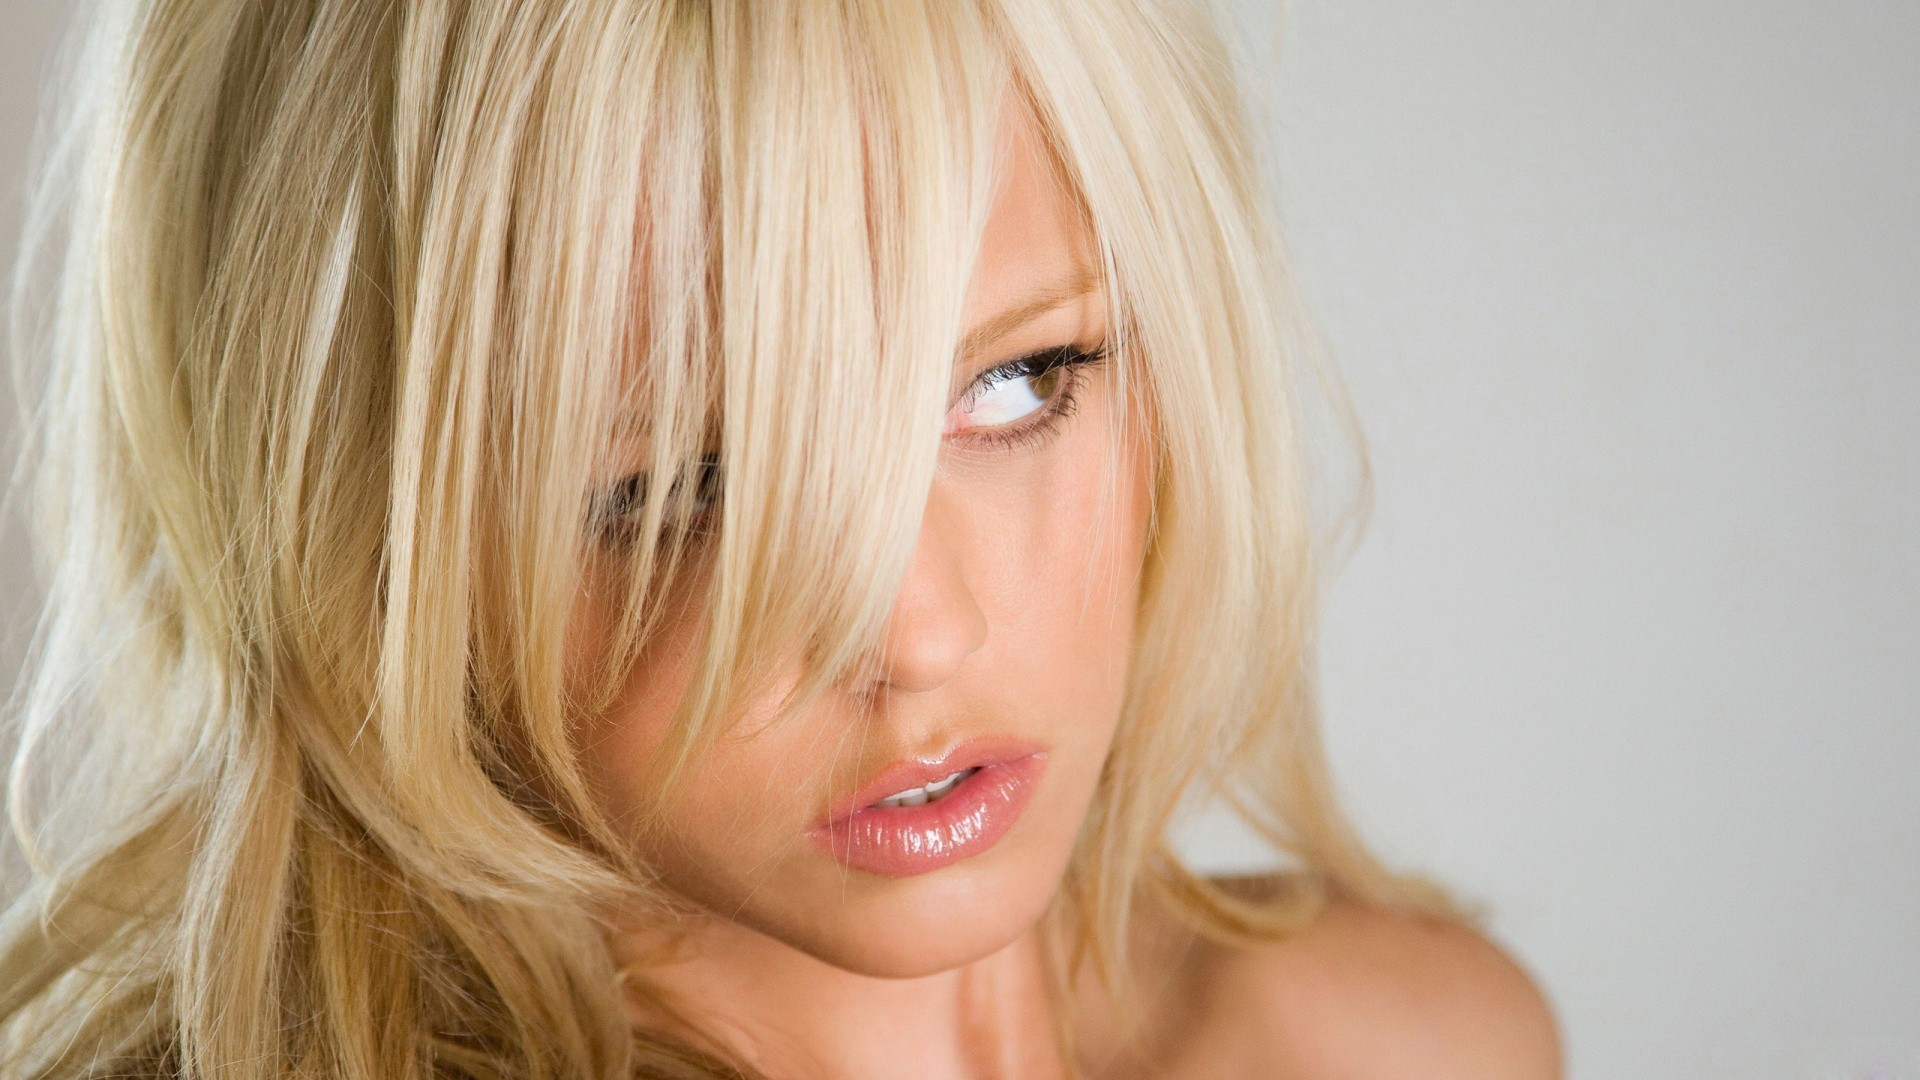 blondes woman lips mouth